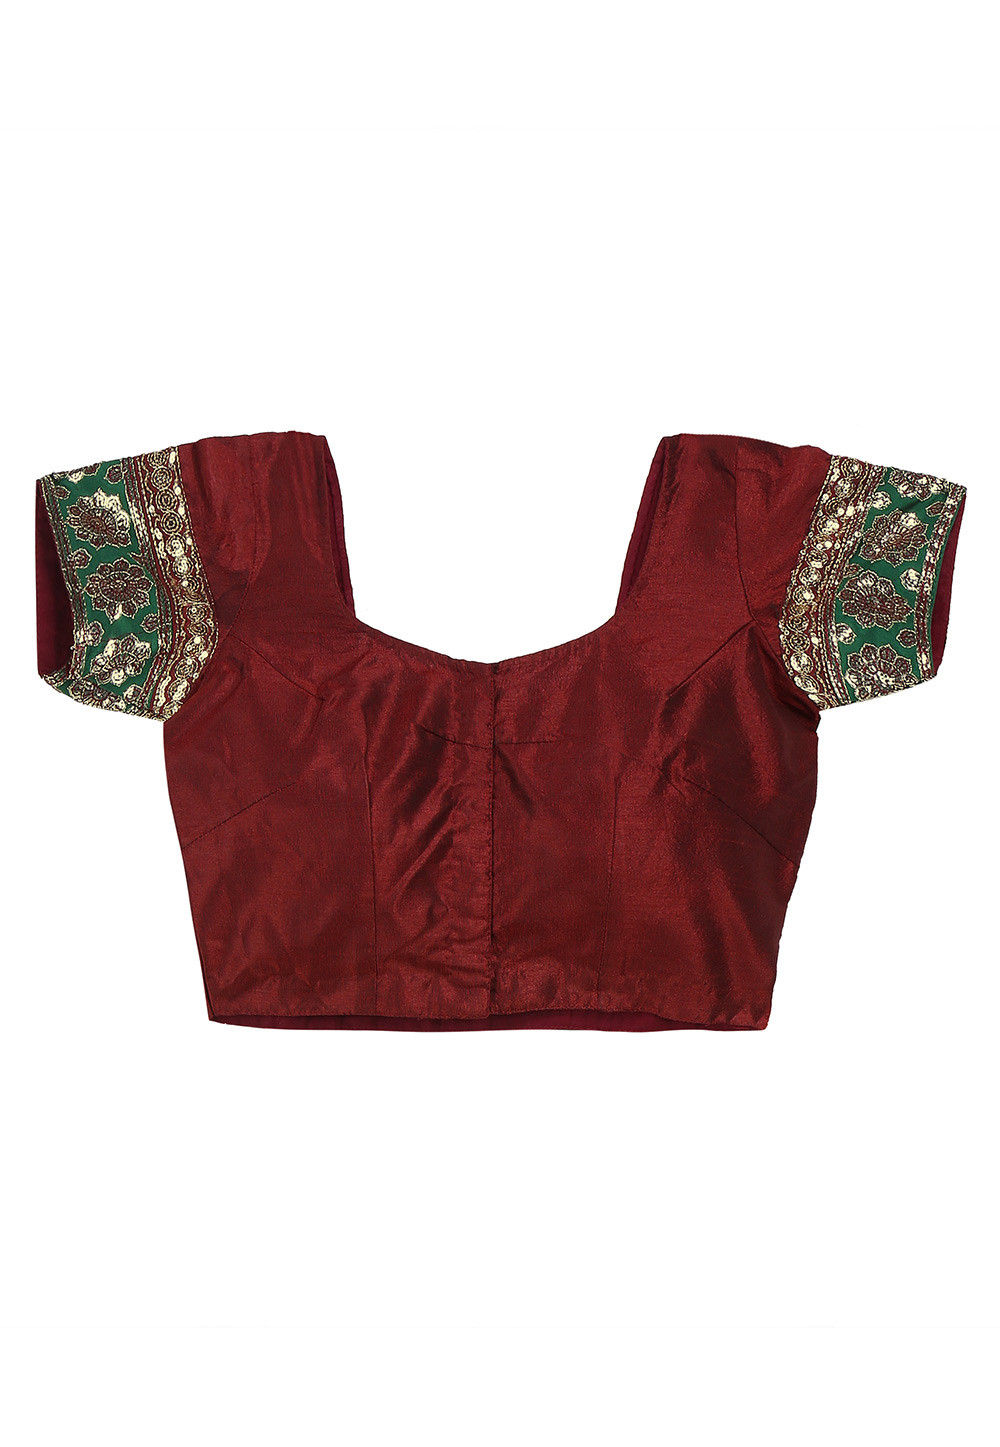 Embroidered Patch Border Art Silk Blouse in Maroon